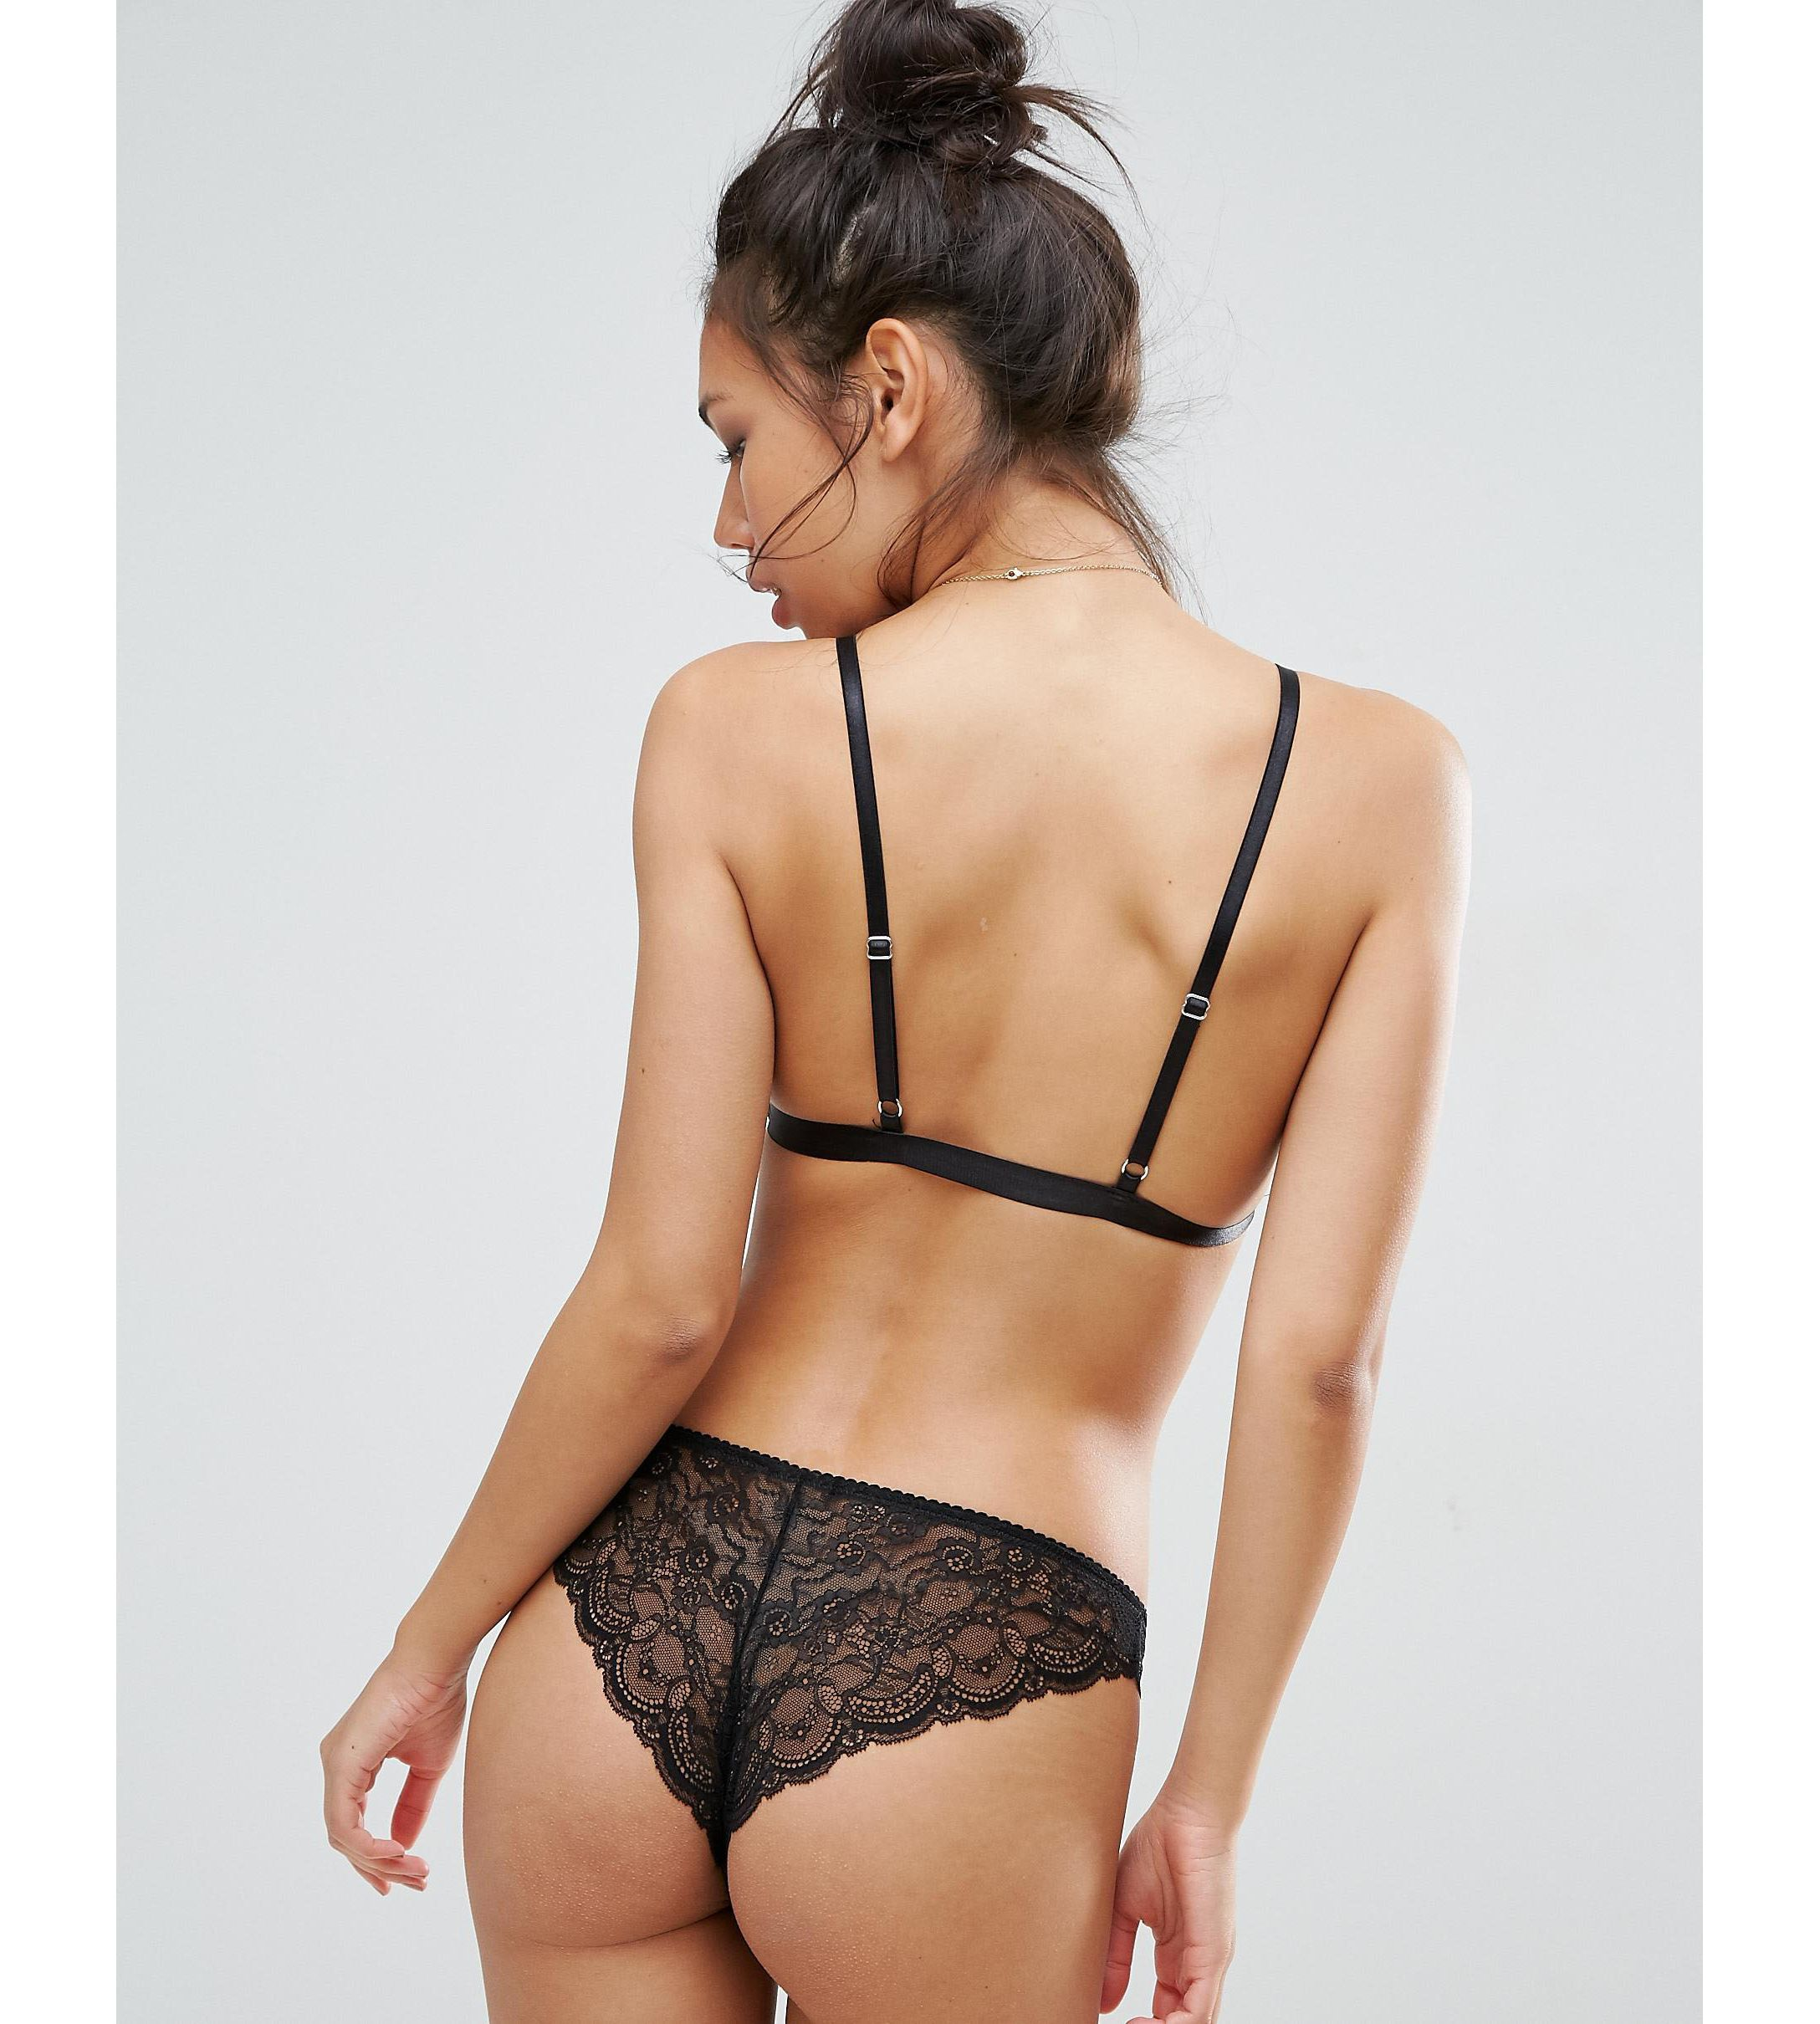 ★ASOS★ Microfibre & Pretty Lace Brazilian 3 Pack